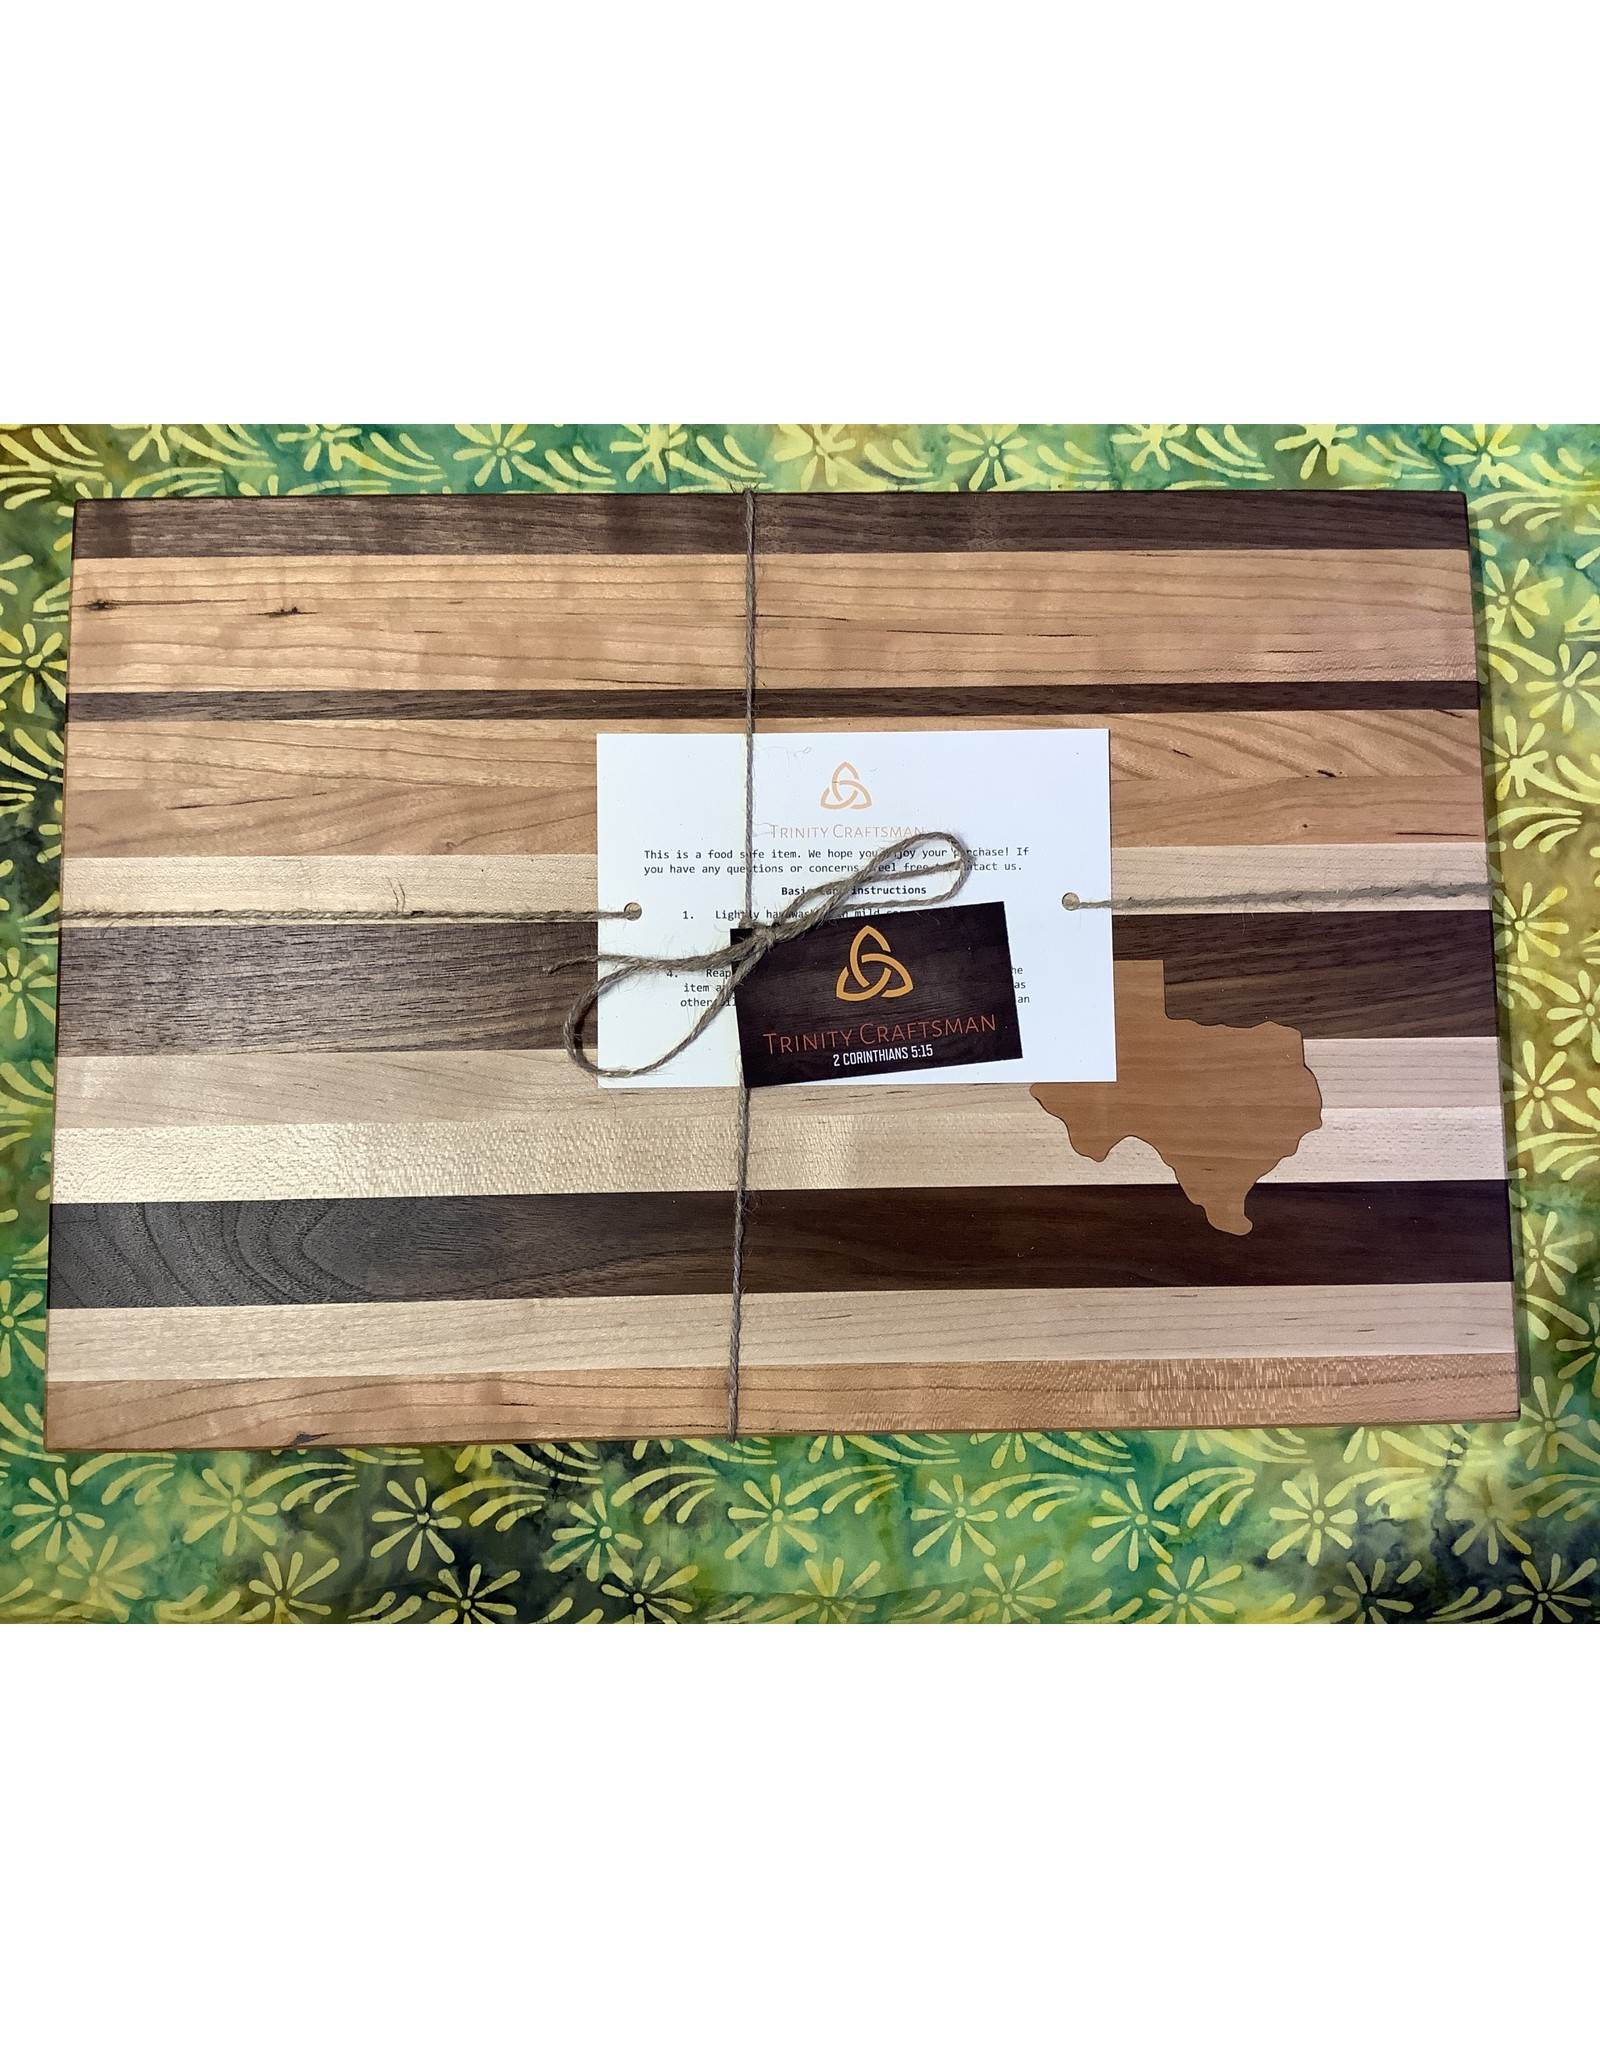 Trinity Craftsman Large Cutting Board with Texas and Stripes, Maple, Walnut, Cherry